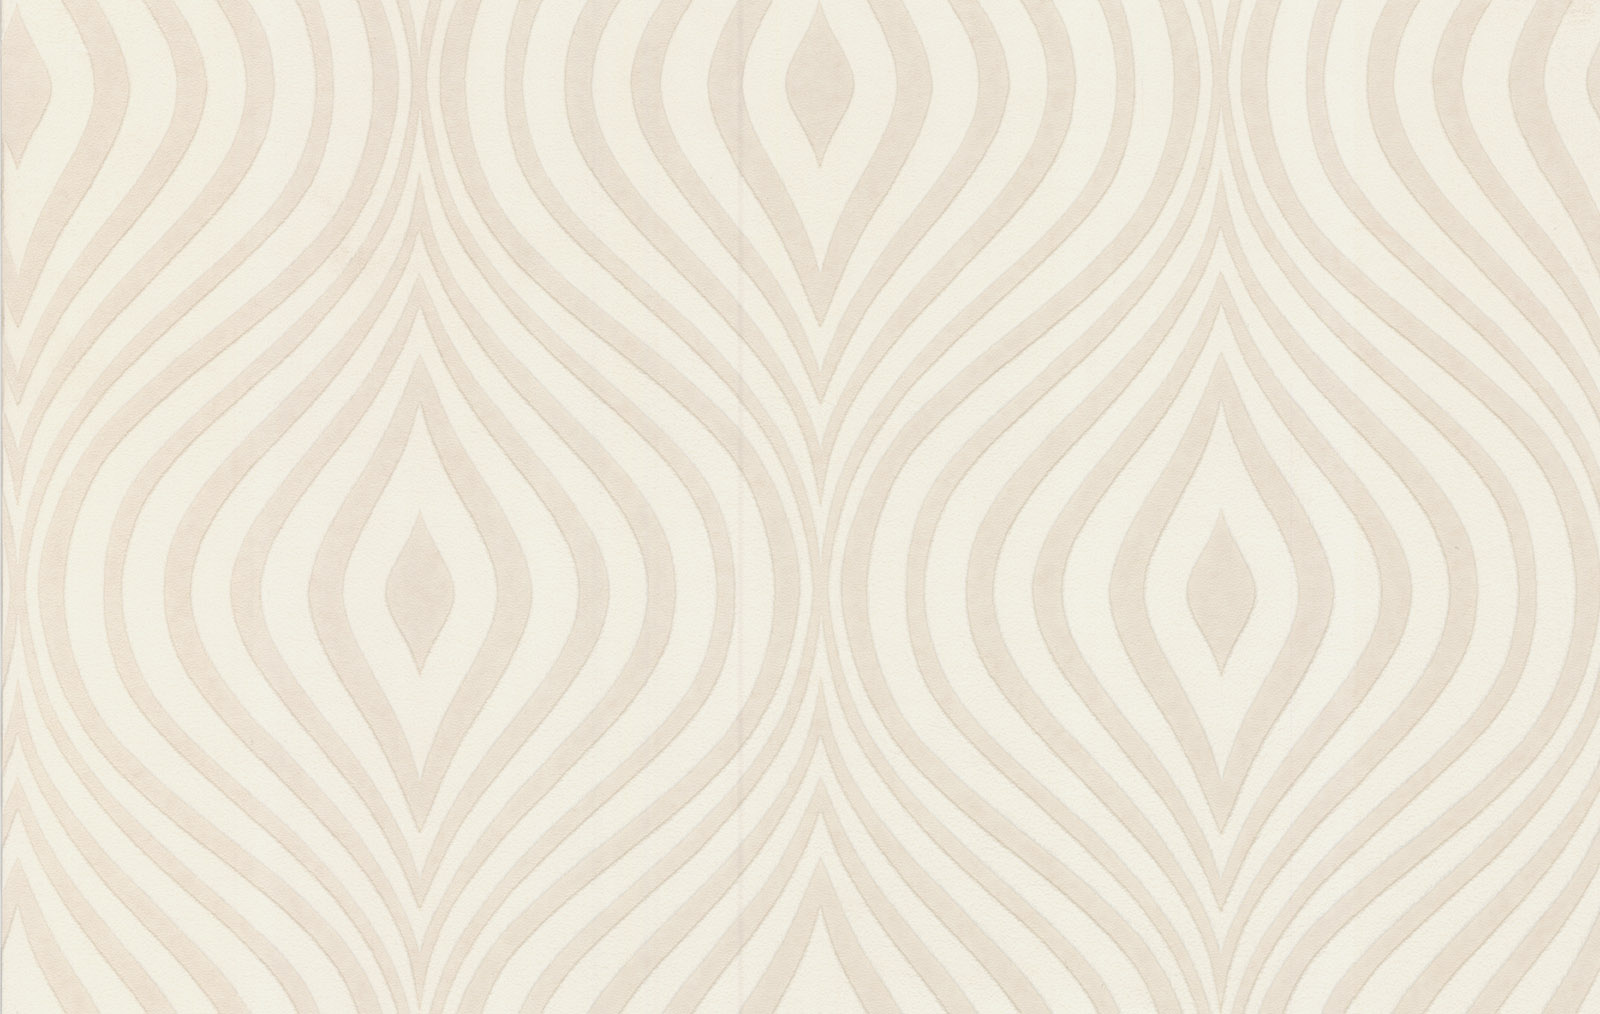 York Wallcoverings Et4062 750 Home Weave With Pinstripe